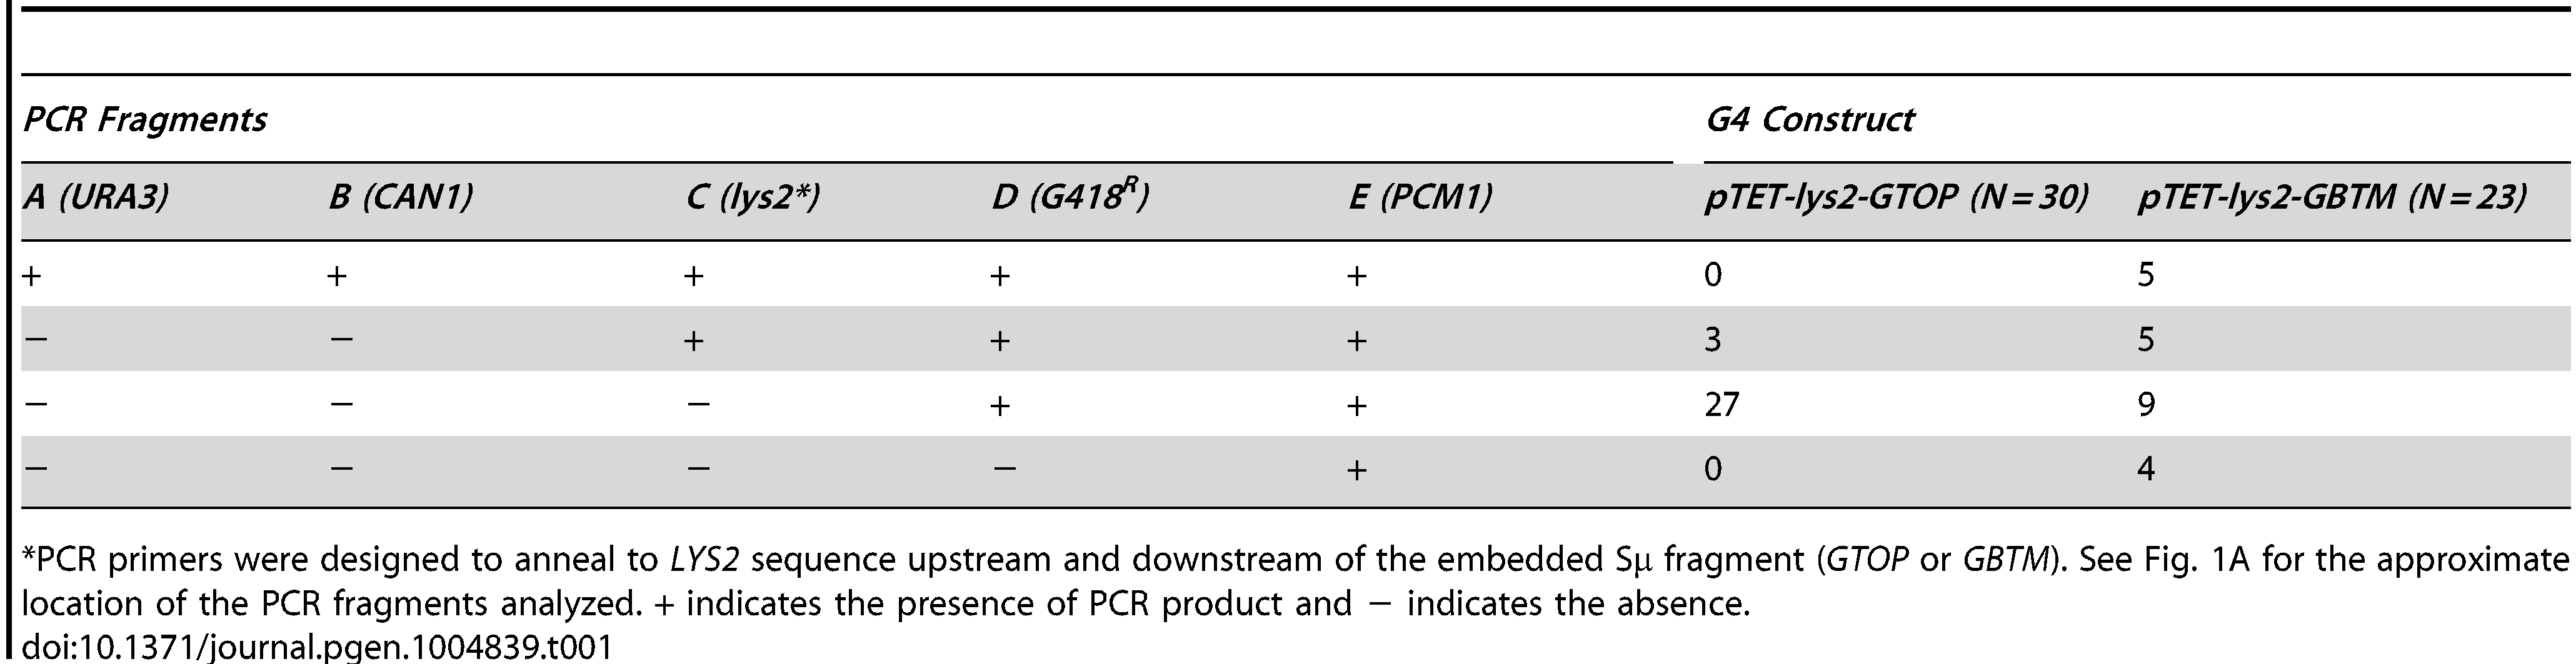 PCR analysis to map GCR breakpoints.